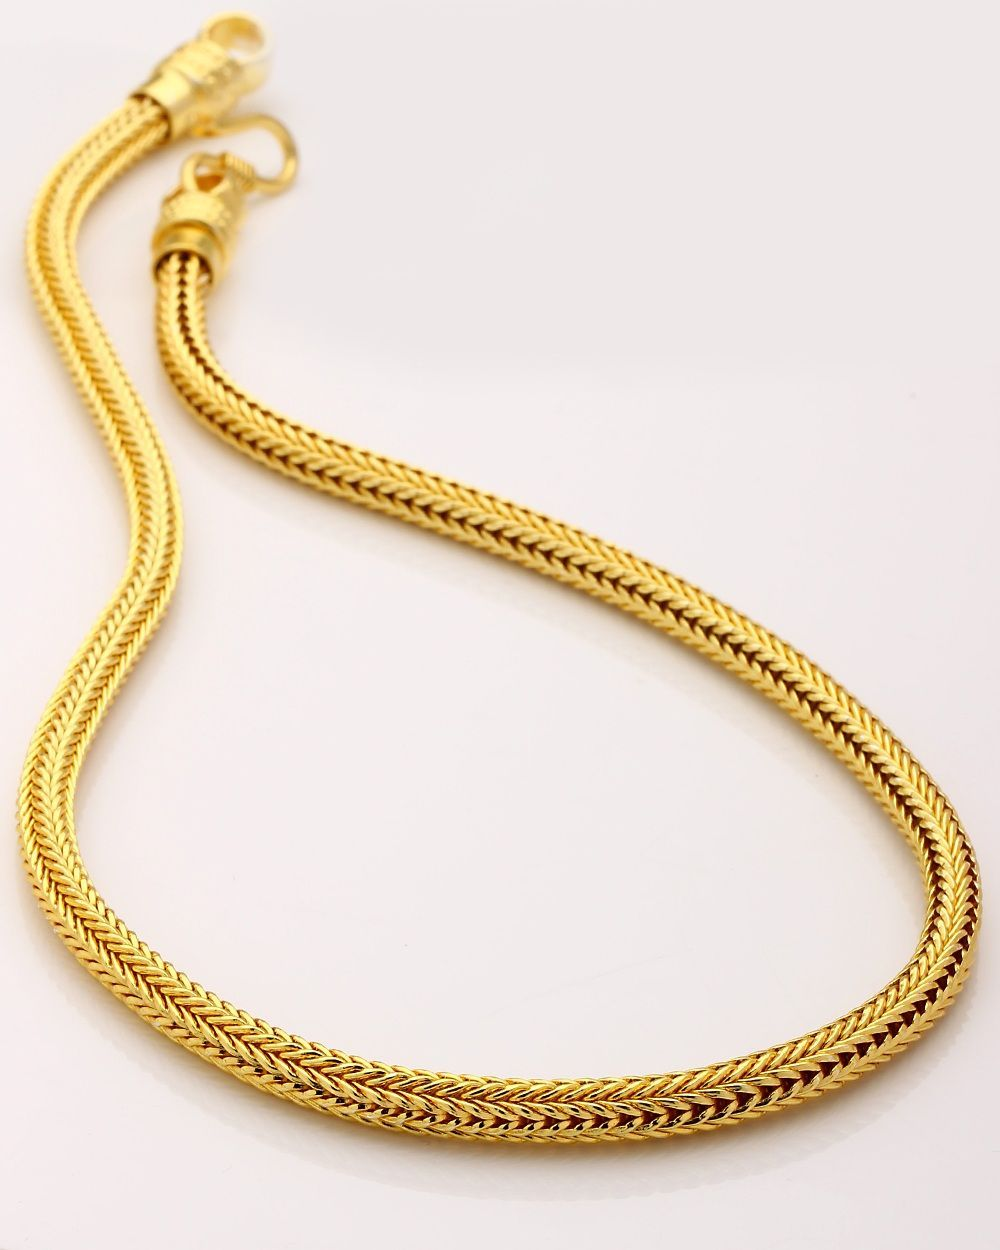 10 Exhilarating A Gold Chain For Men Makes The Perfect Gift Ideas